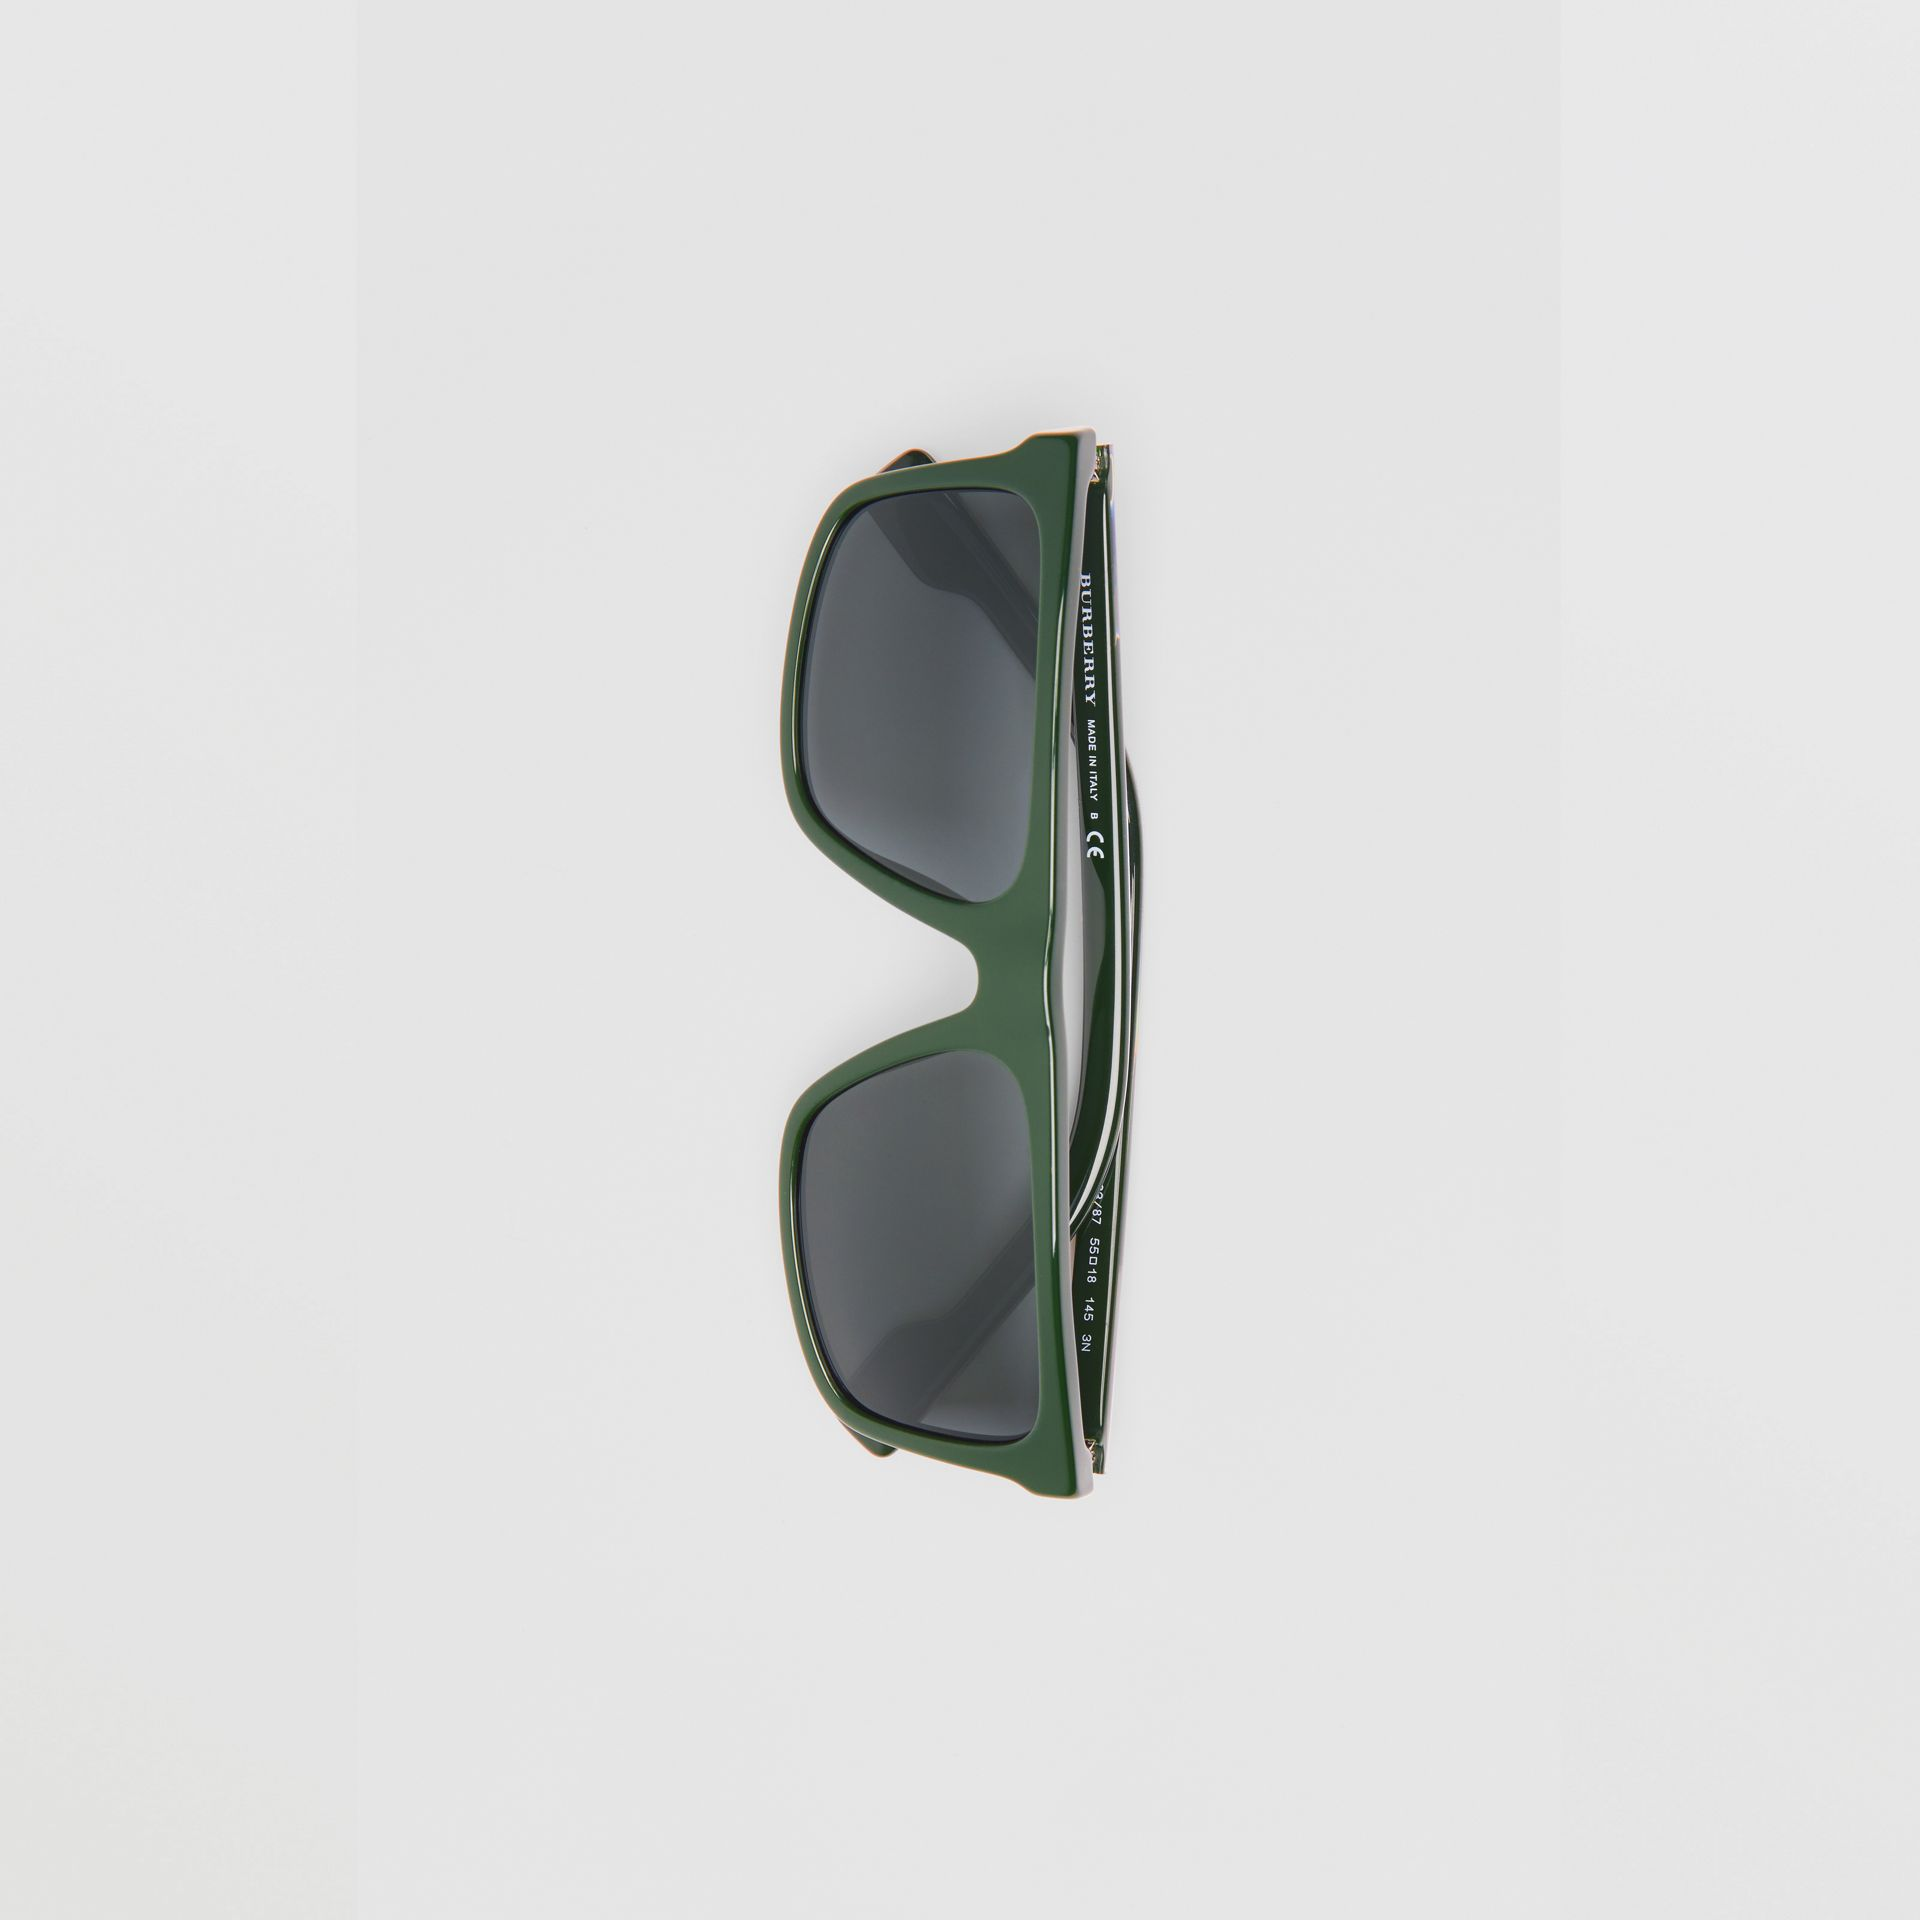 Straight-brow Sunglasses in Green - Men | Burberry - gallery image 2